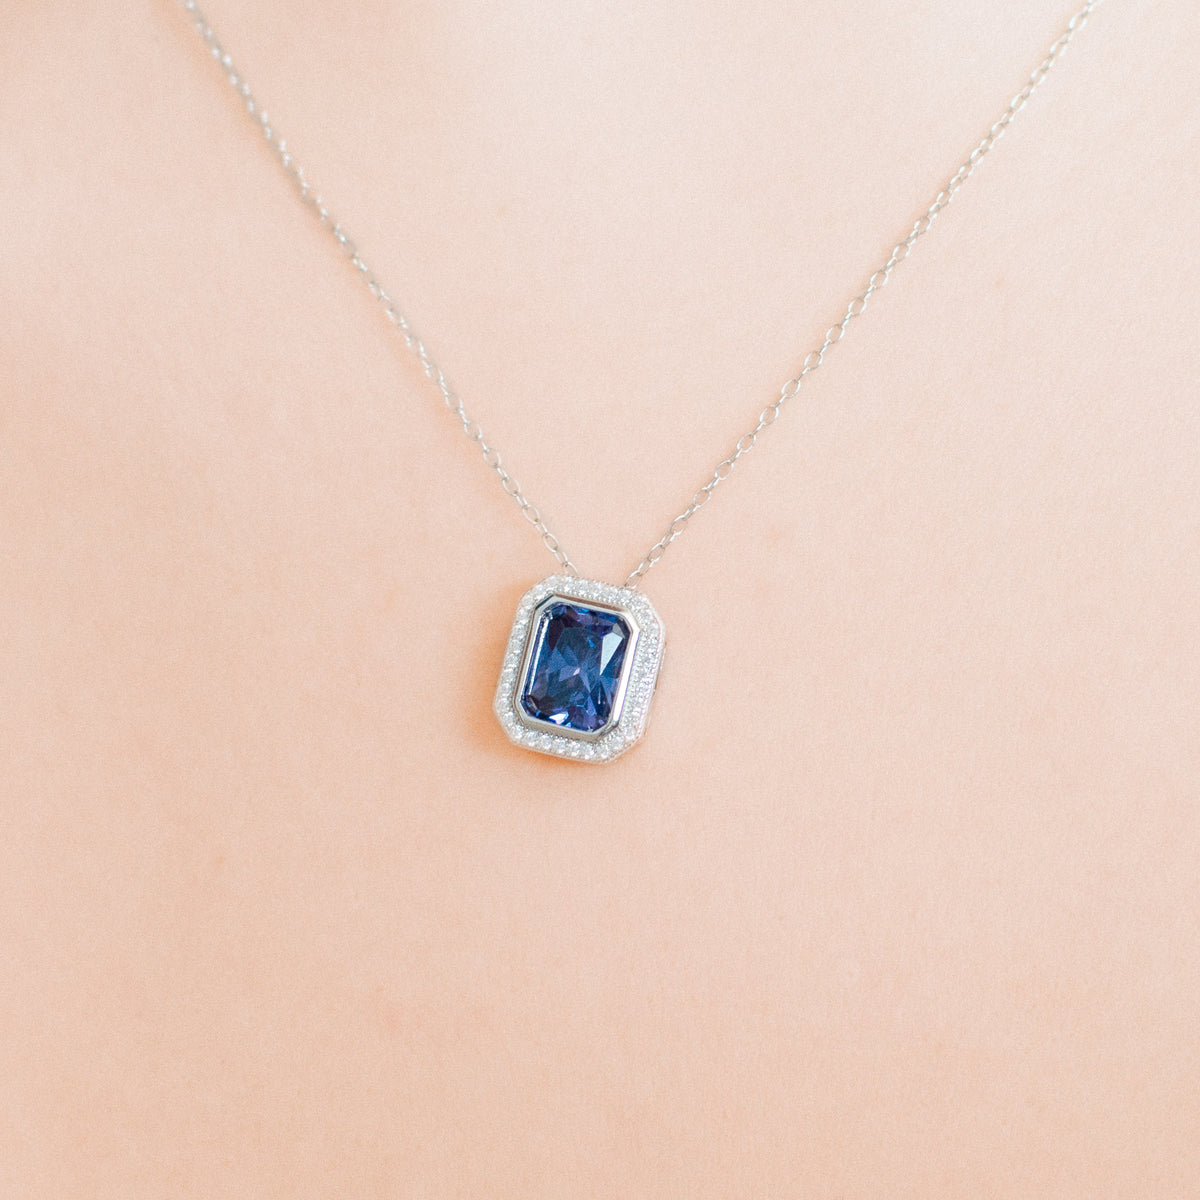 Lifestyle picture of the dark blue rectangle cubic zirconia pendant necklace on a person.